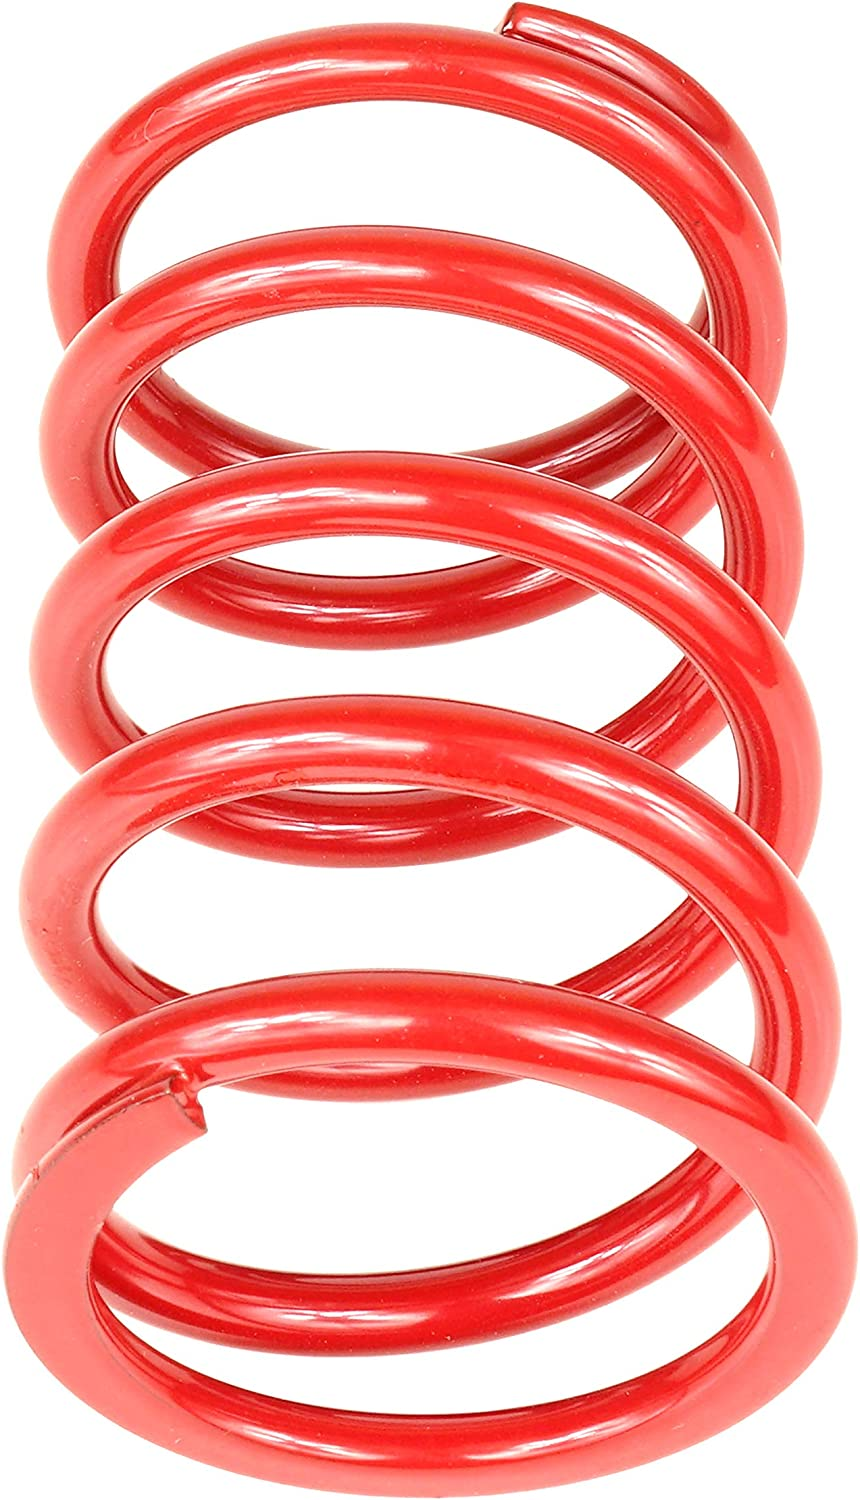 Caltric Primary Drive Clutch Red Spring compatible with Arctic Cat 0646-149